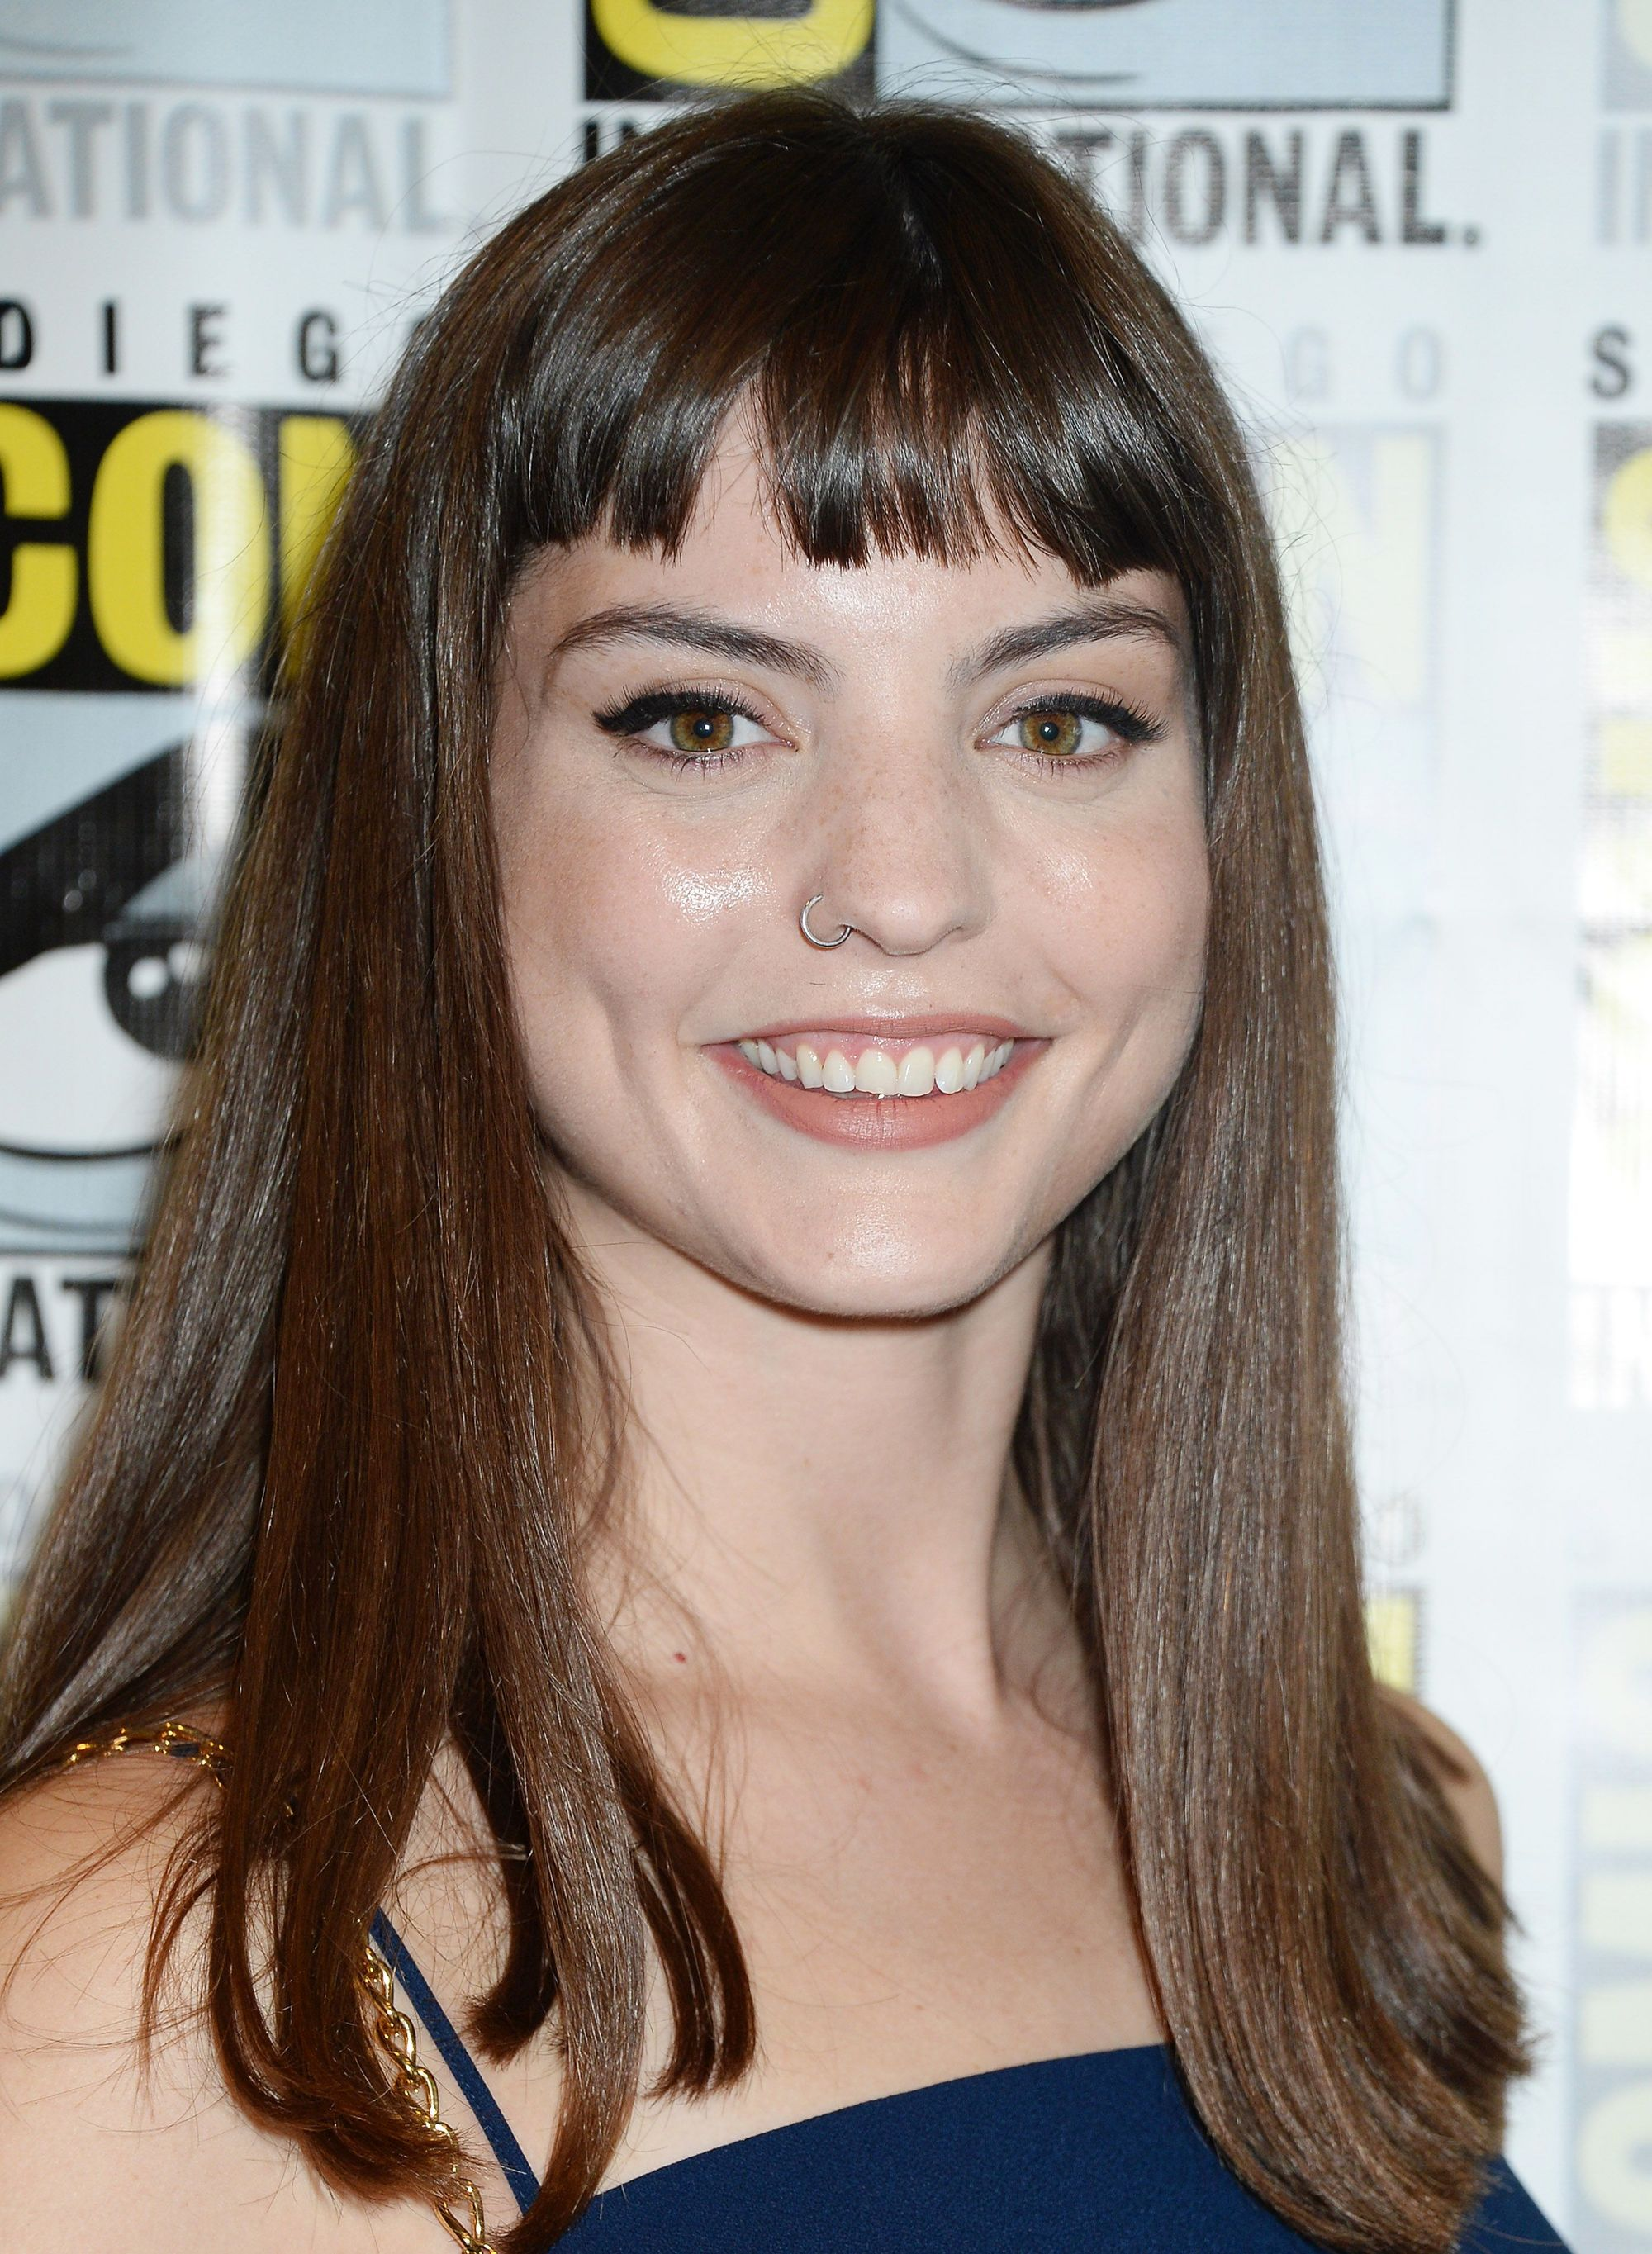 actress kit reeve with shoulder length brunette hair and a micro fringe